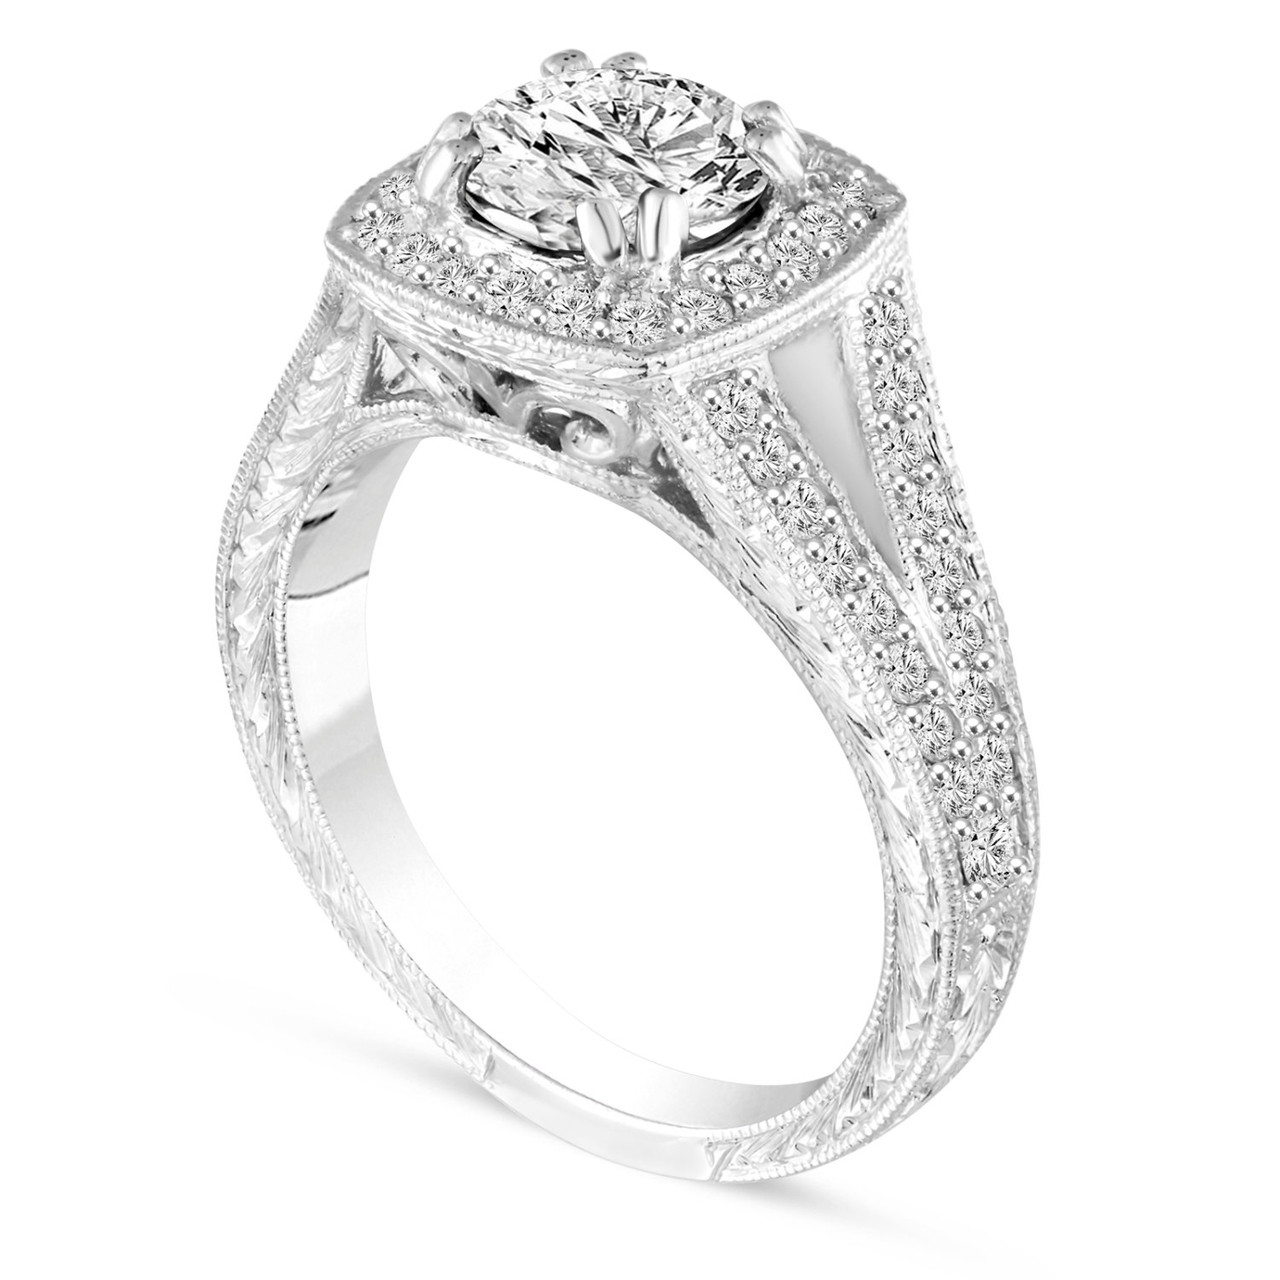 Vintage antique style engagement ring confirm